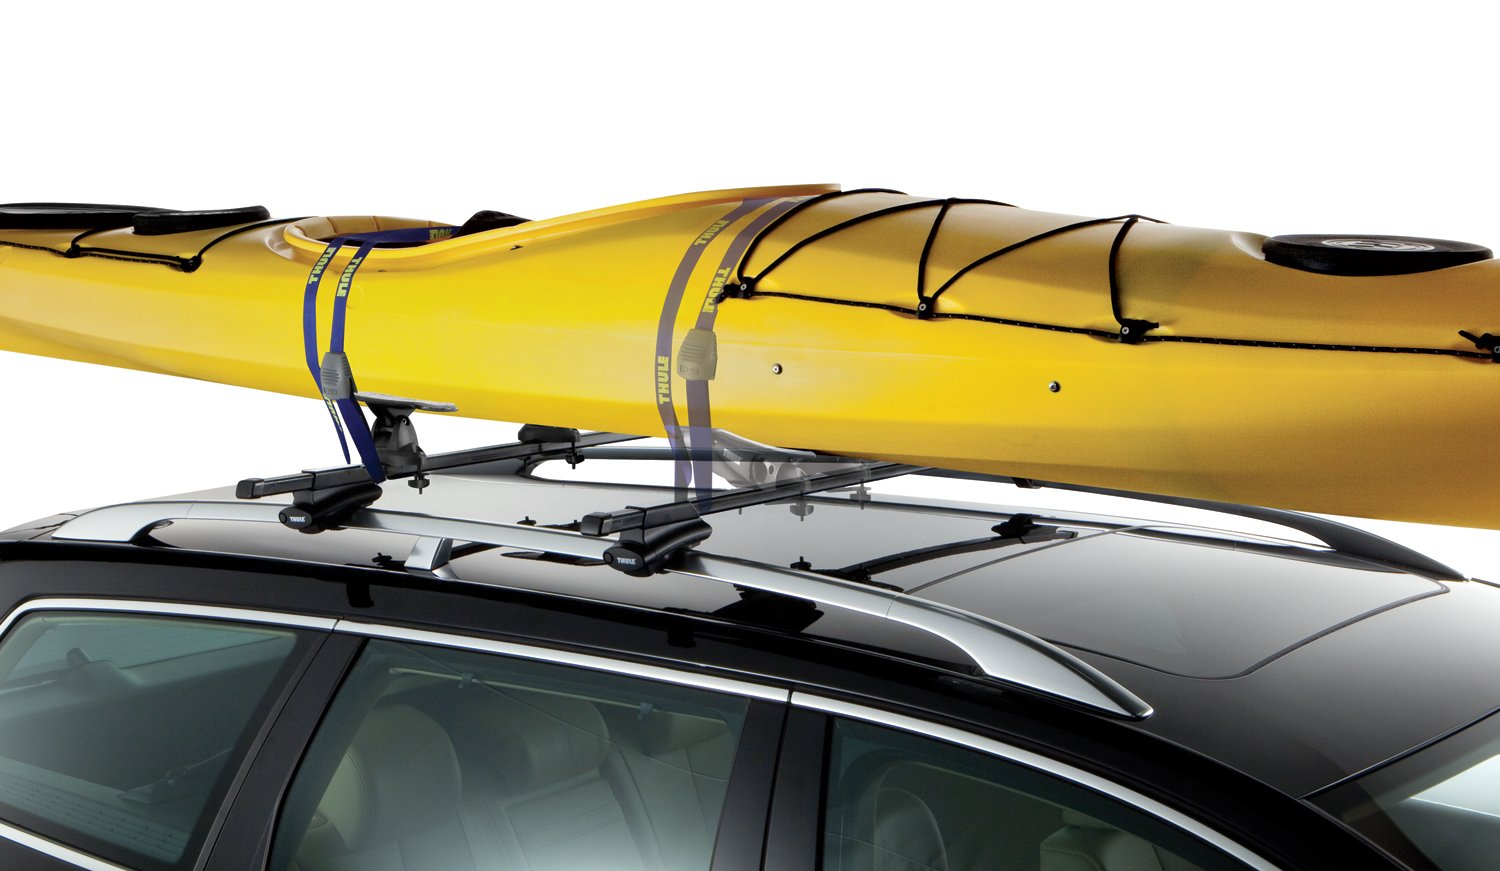 rack thule roof world cap kayak racks